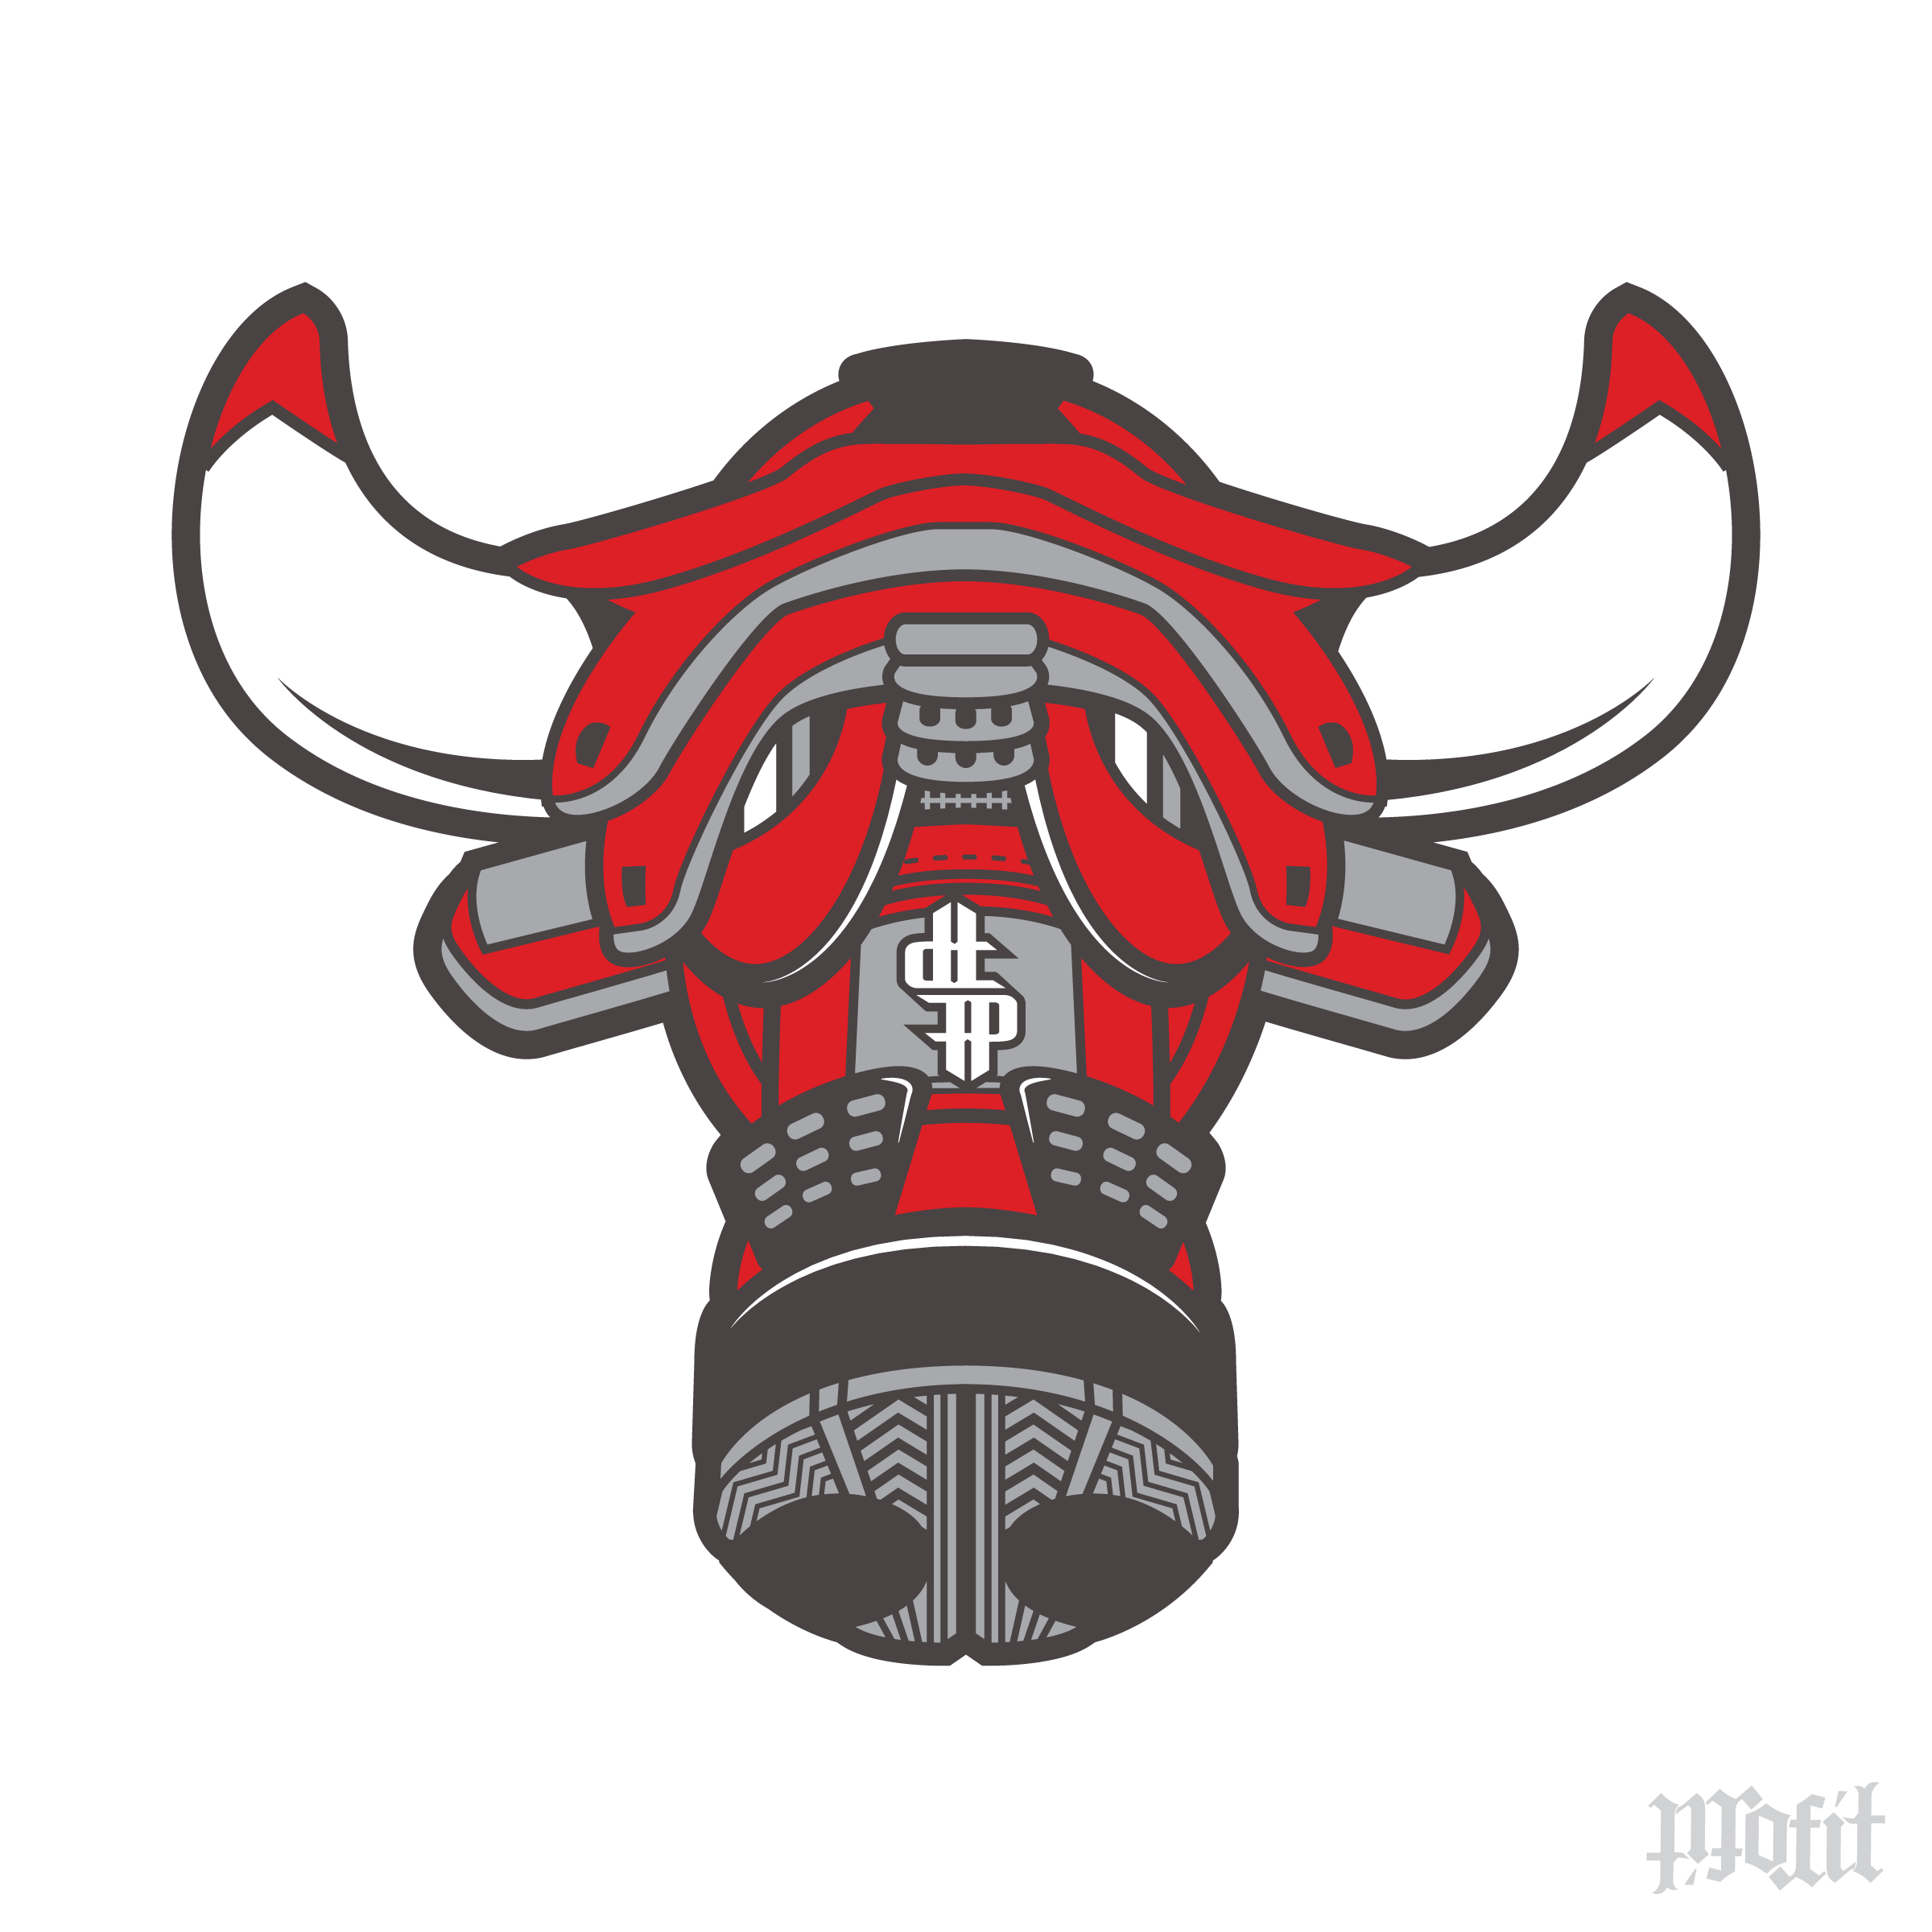 2400x2400 Daily Creation Toro Iv Gas Mask Vector Graphic The Blog